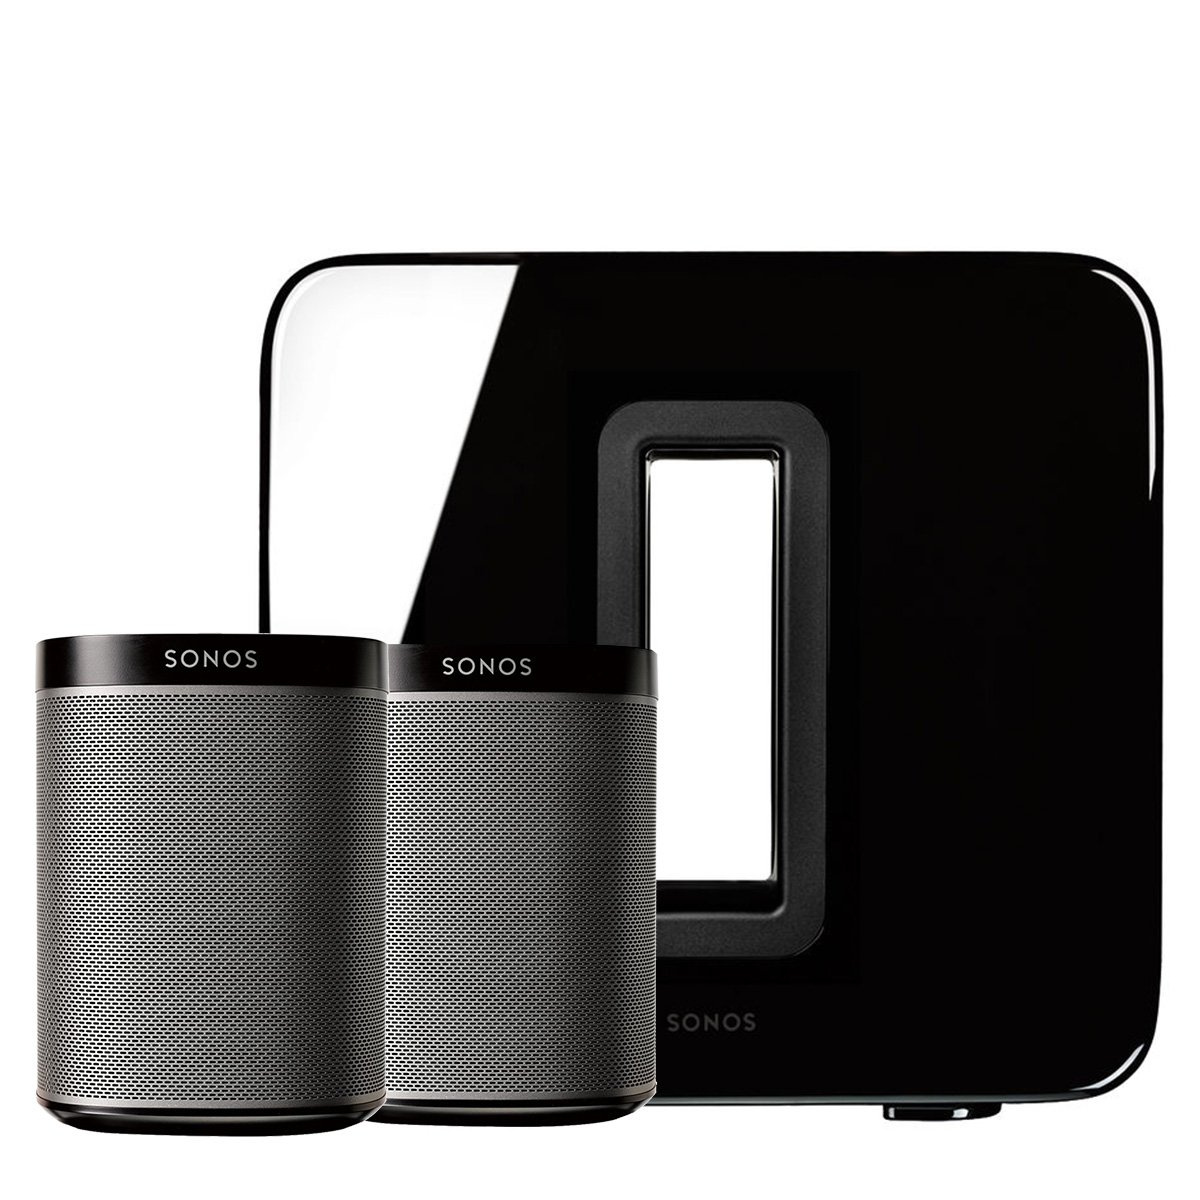 Sonos PLAY:1 (Black, Pair) Multi-Room Digital Music System Bundle & Sonos Wireless SUB (Black) by Sonos (Image #1)